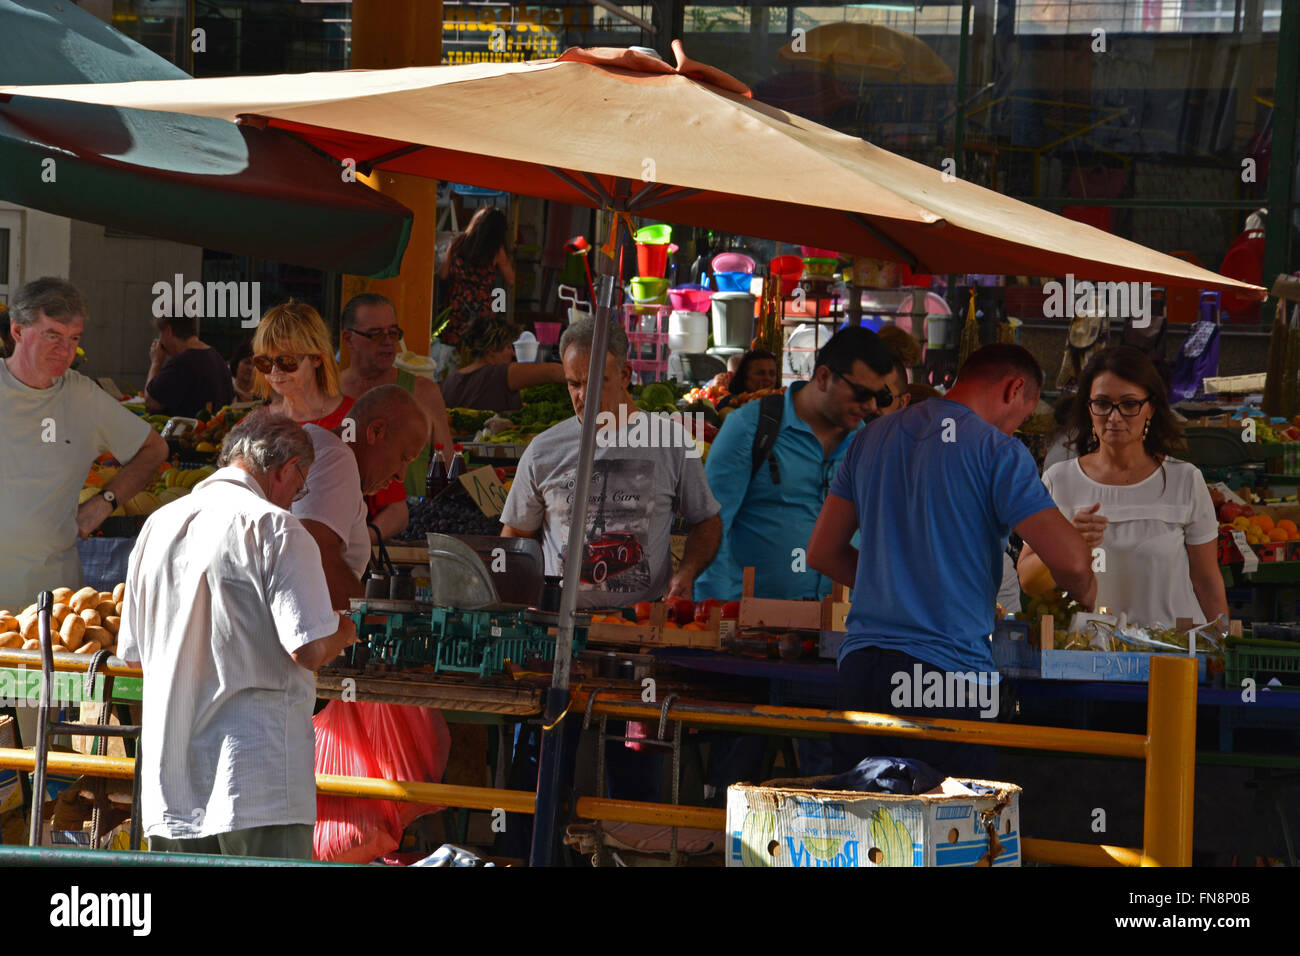 Vendors sell produce in the Green Market in the Old Town section of Sarajevo, Bosnia and Herzegovina. - Stock Image